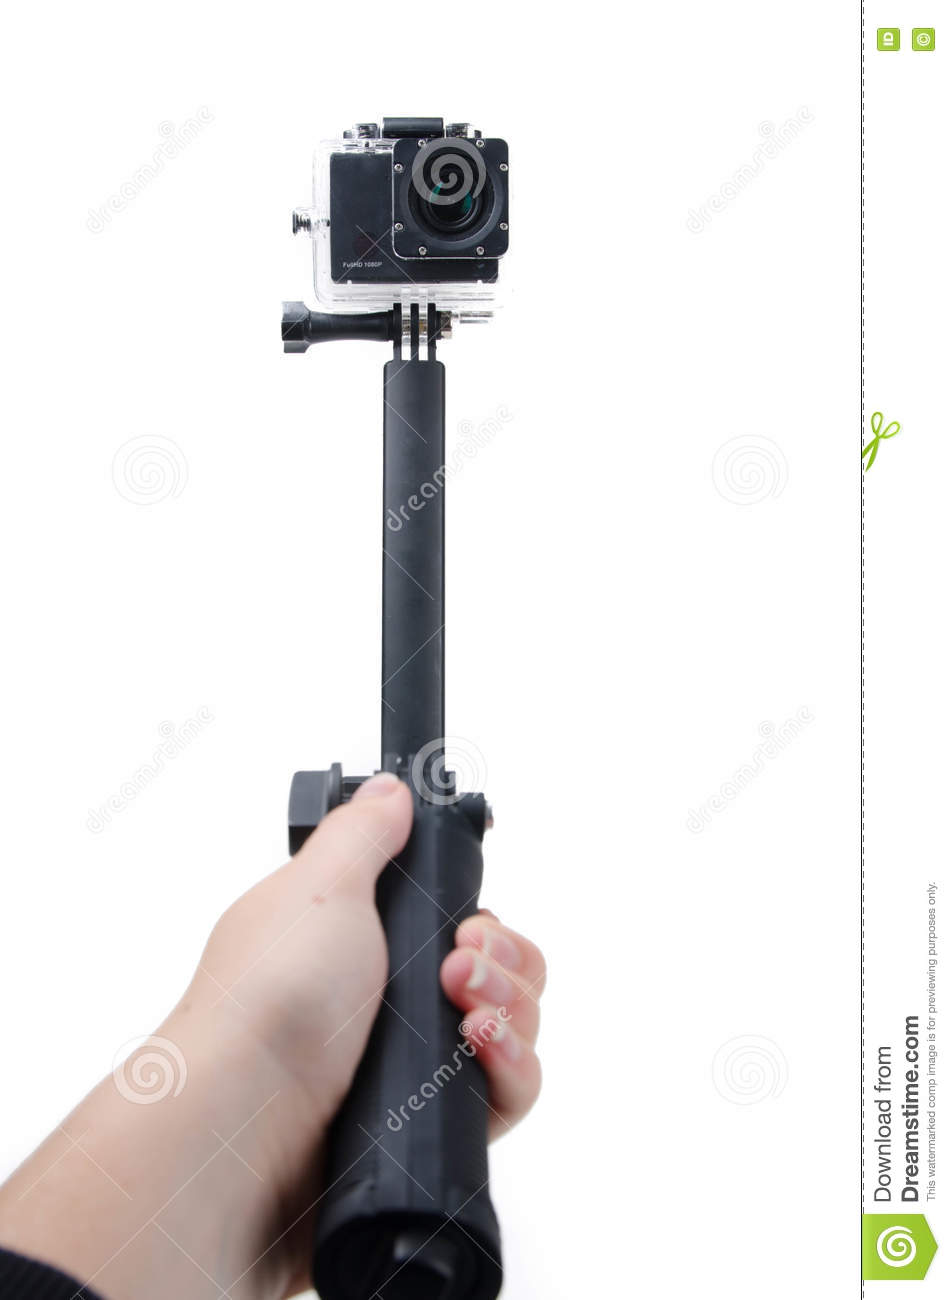 action camera selfie stick stock image image of hand 74983307. Black Bedroom Furniture Sets. Home Design Ideas